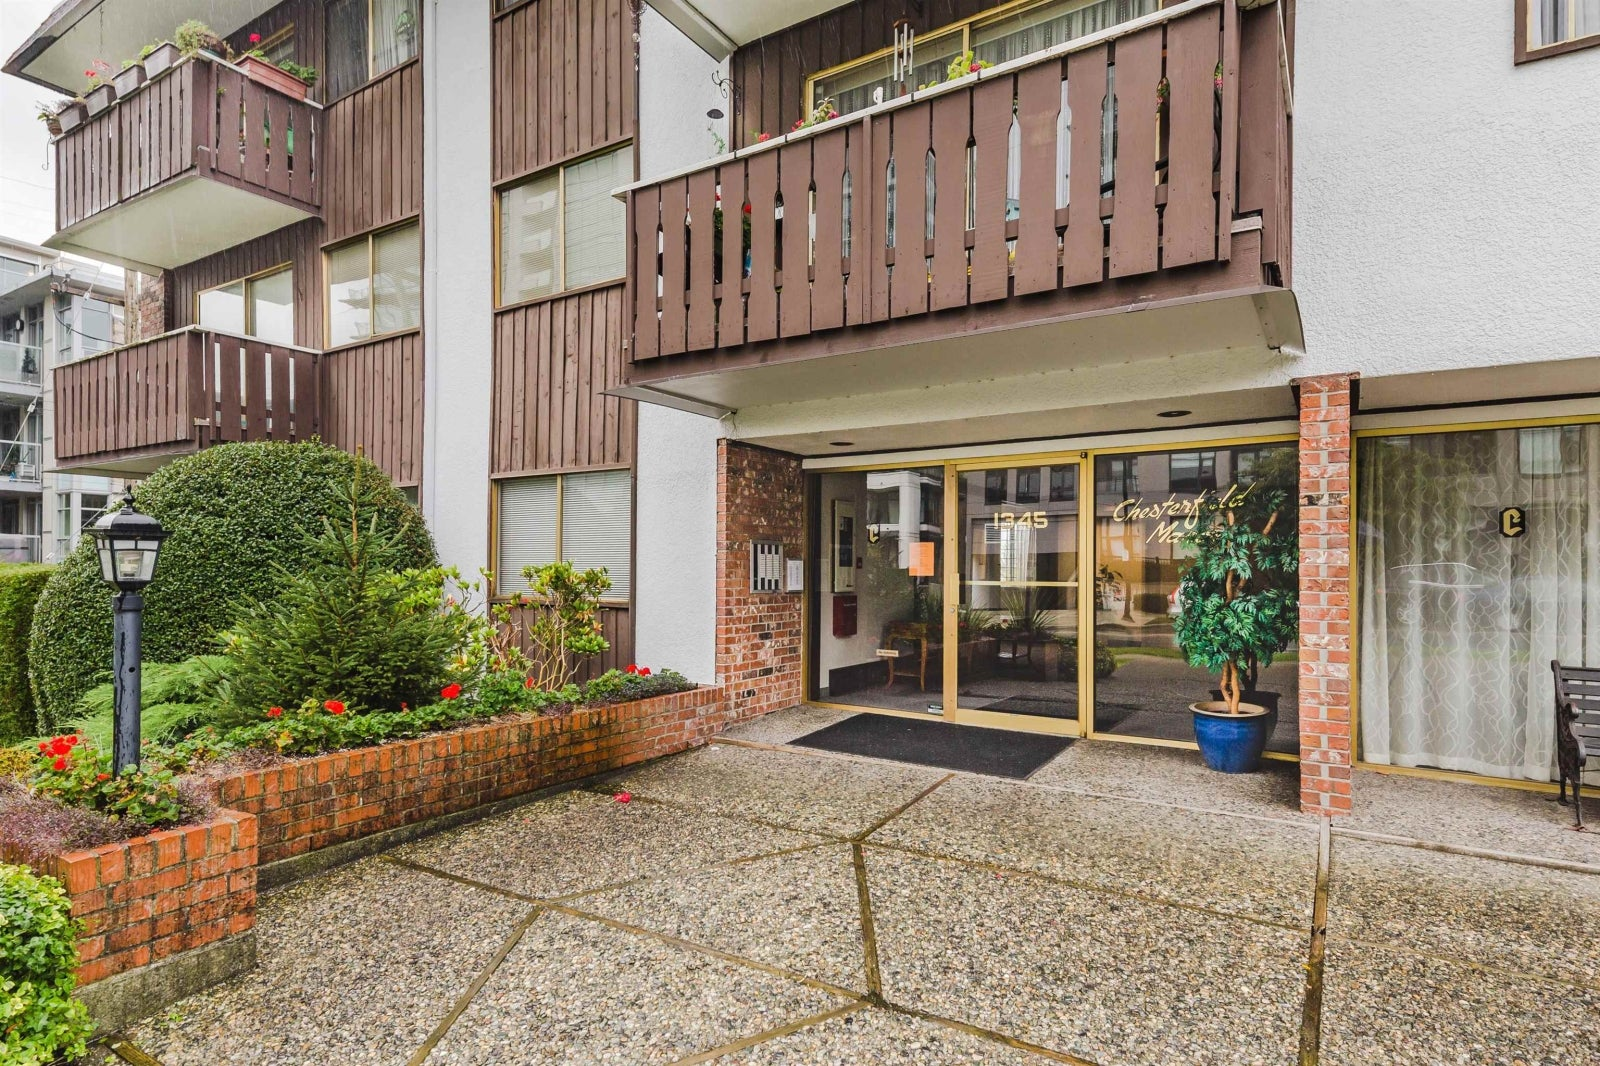 306 1345 CHESTERFIELD AVENUE - Central Lonsdale Apartment/Condo for sale, 1 Bedroom (R2622121) #20